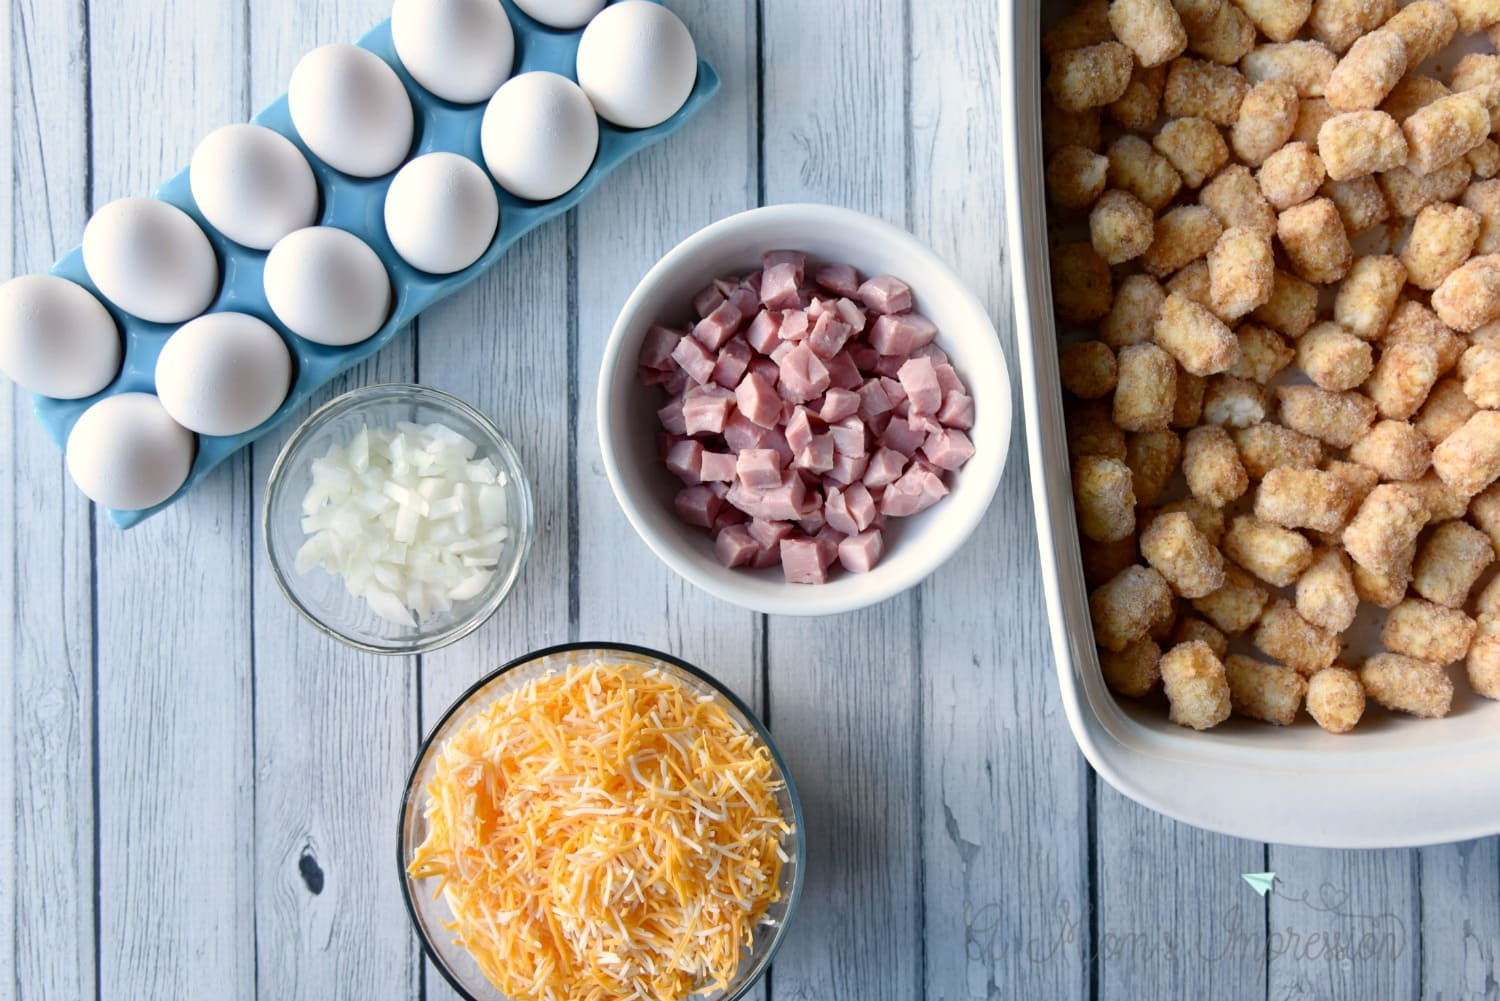 Breakfast Casserole Ingredients